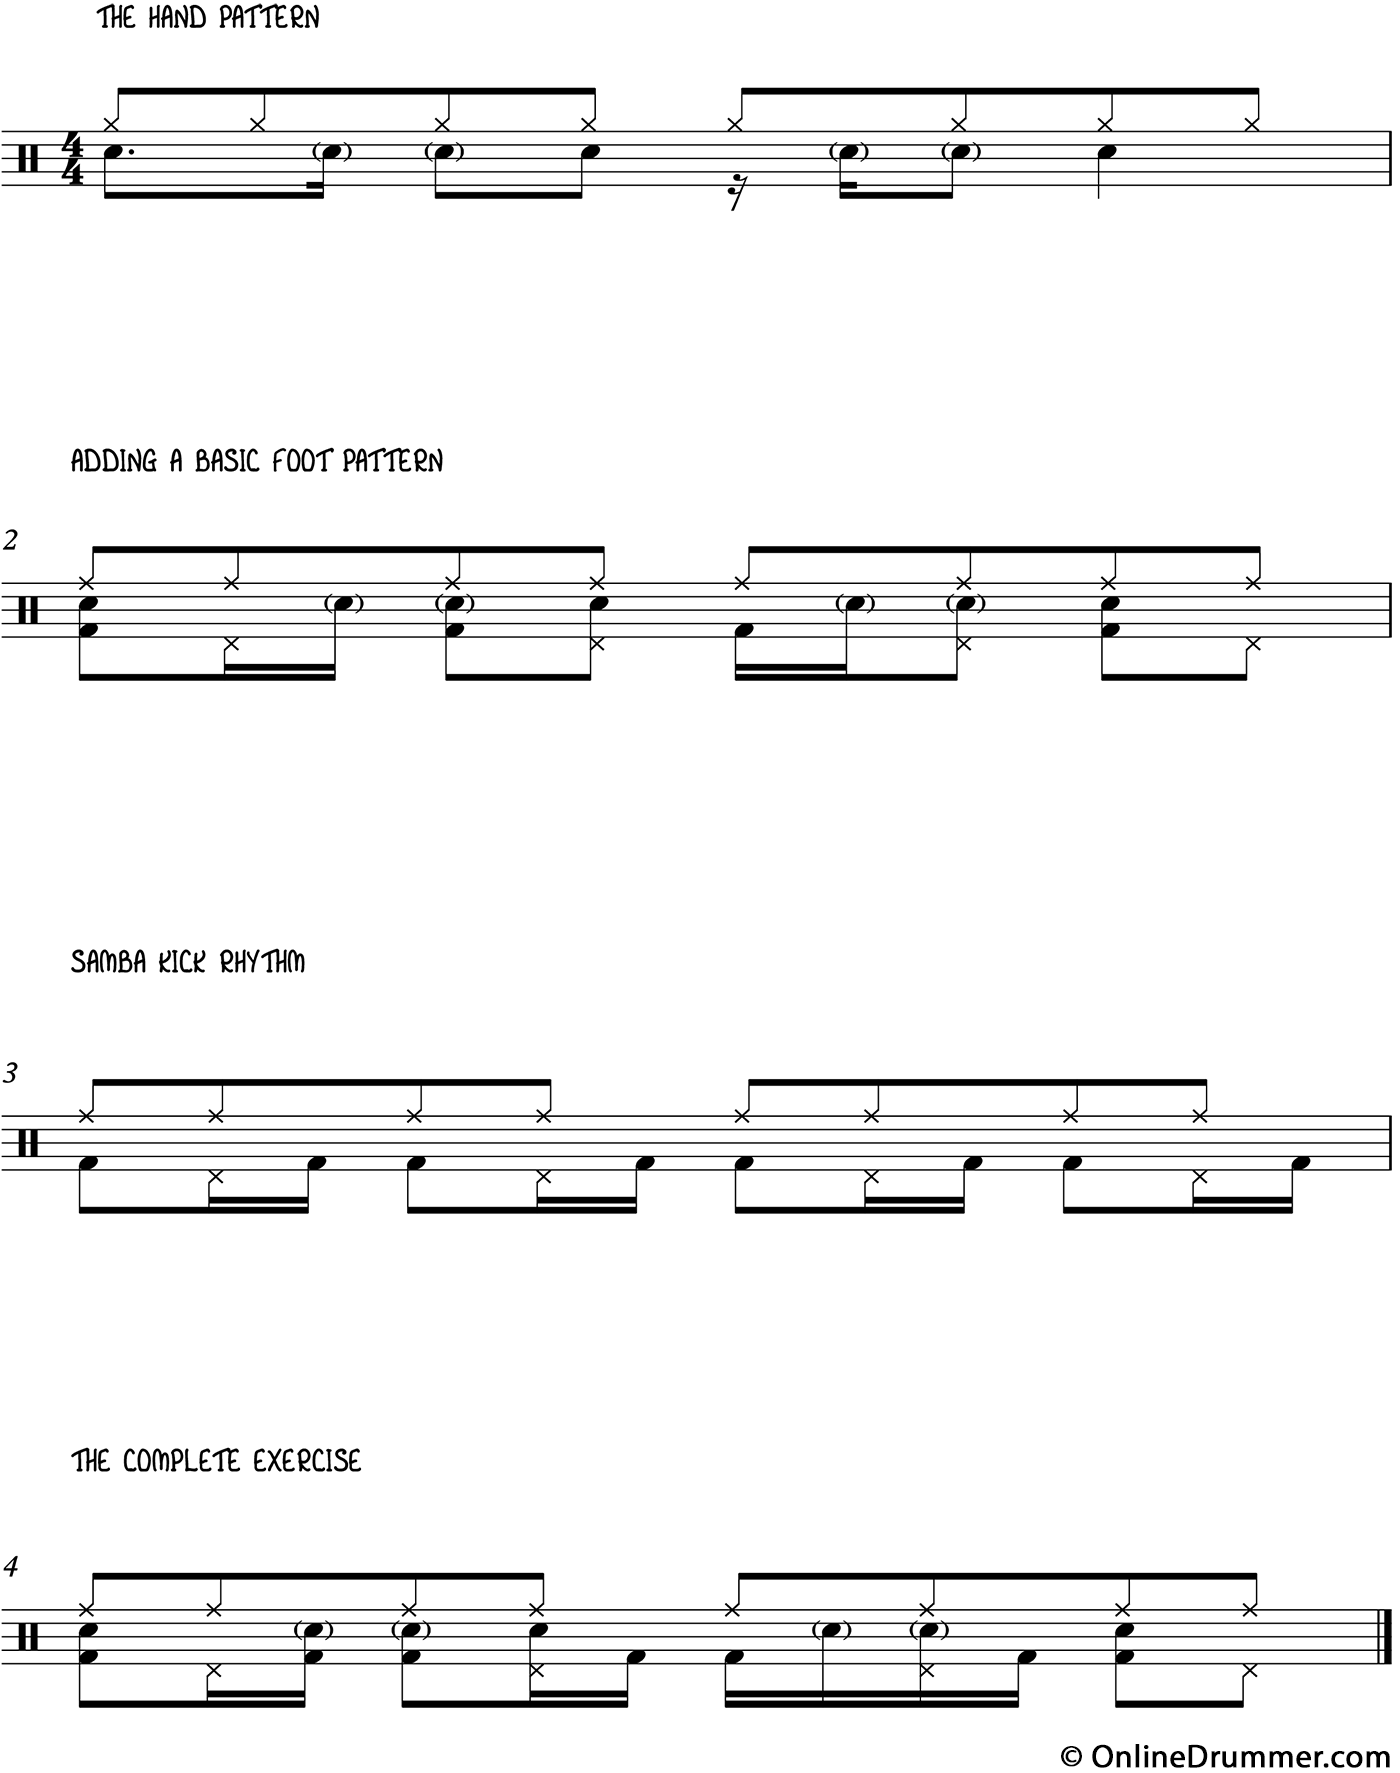 Awesome Independence Exercise - Grooves